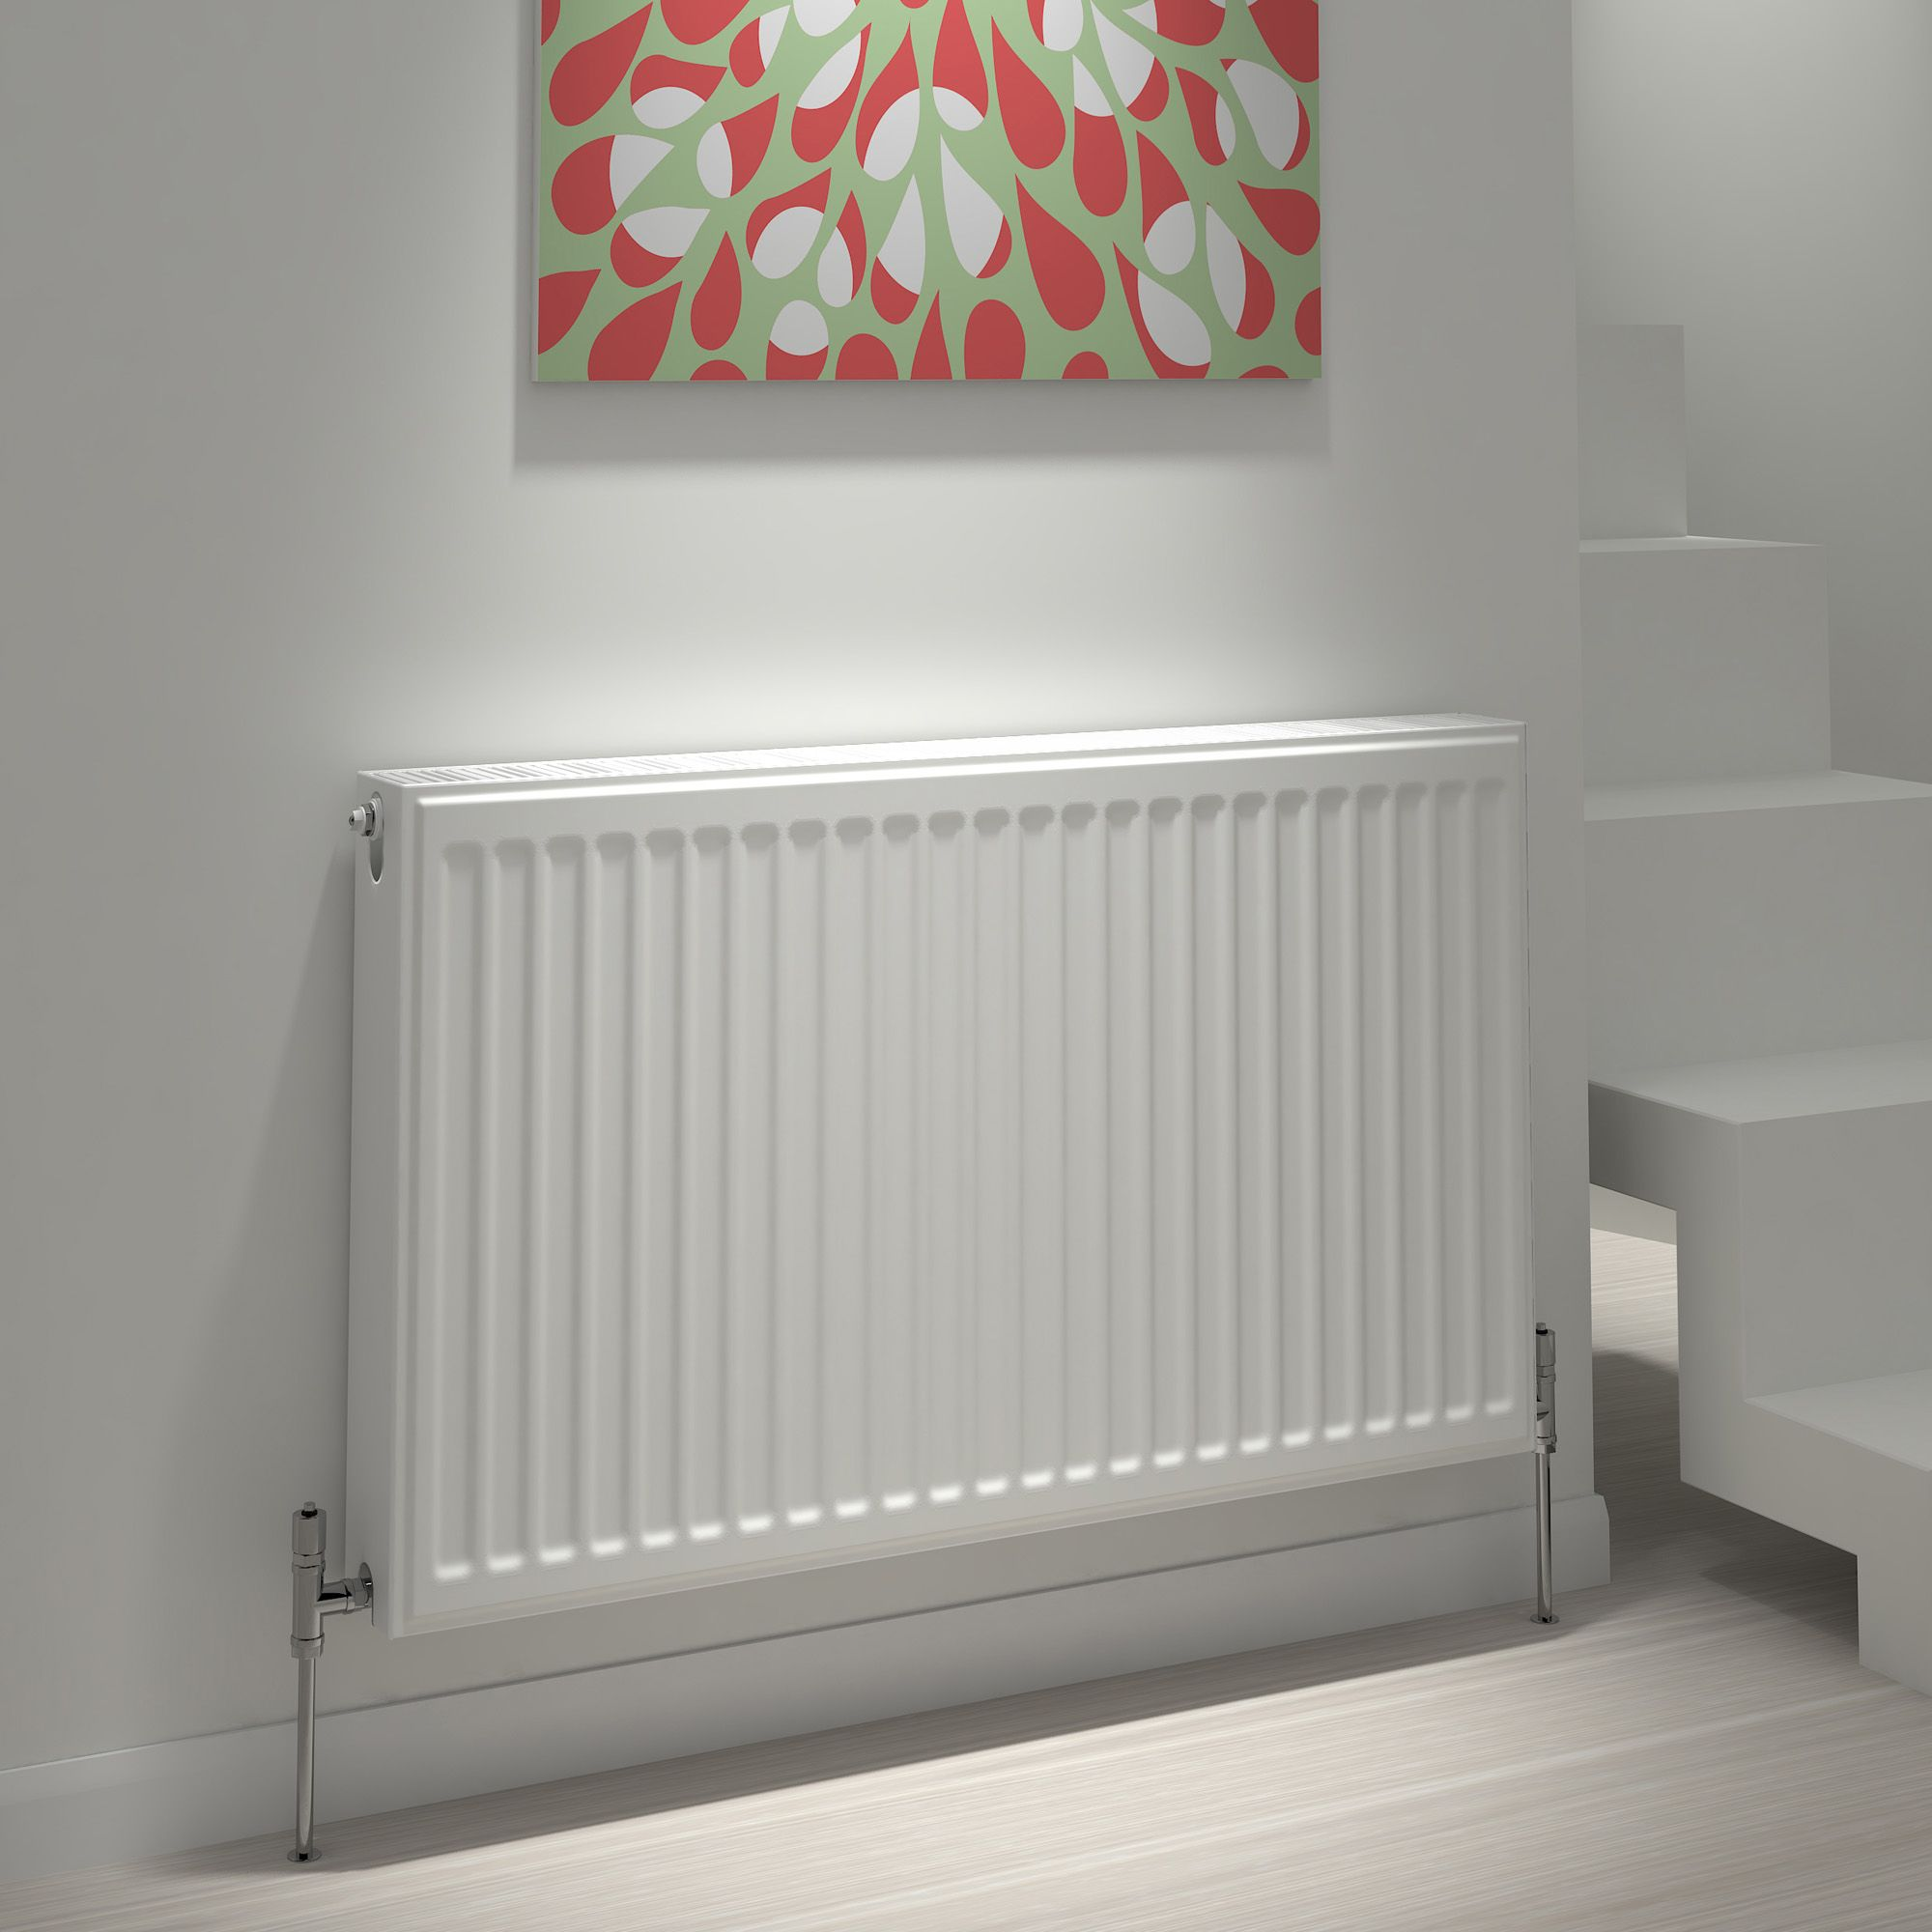 Kudox Type 11 single Panel radiator White, (H)400mm